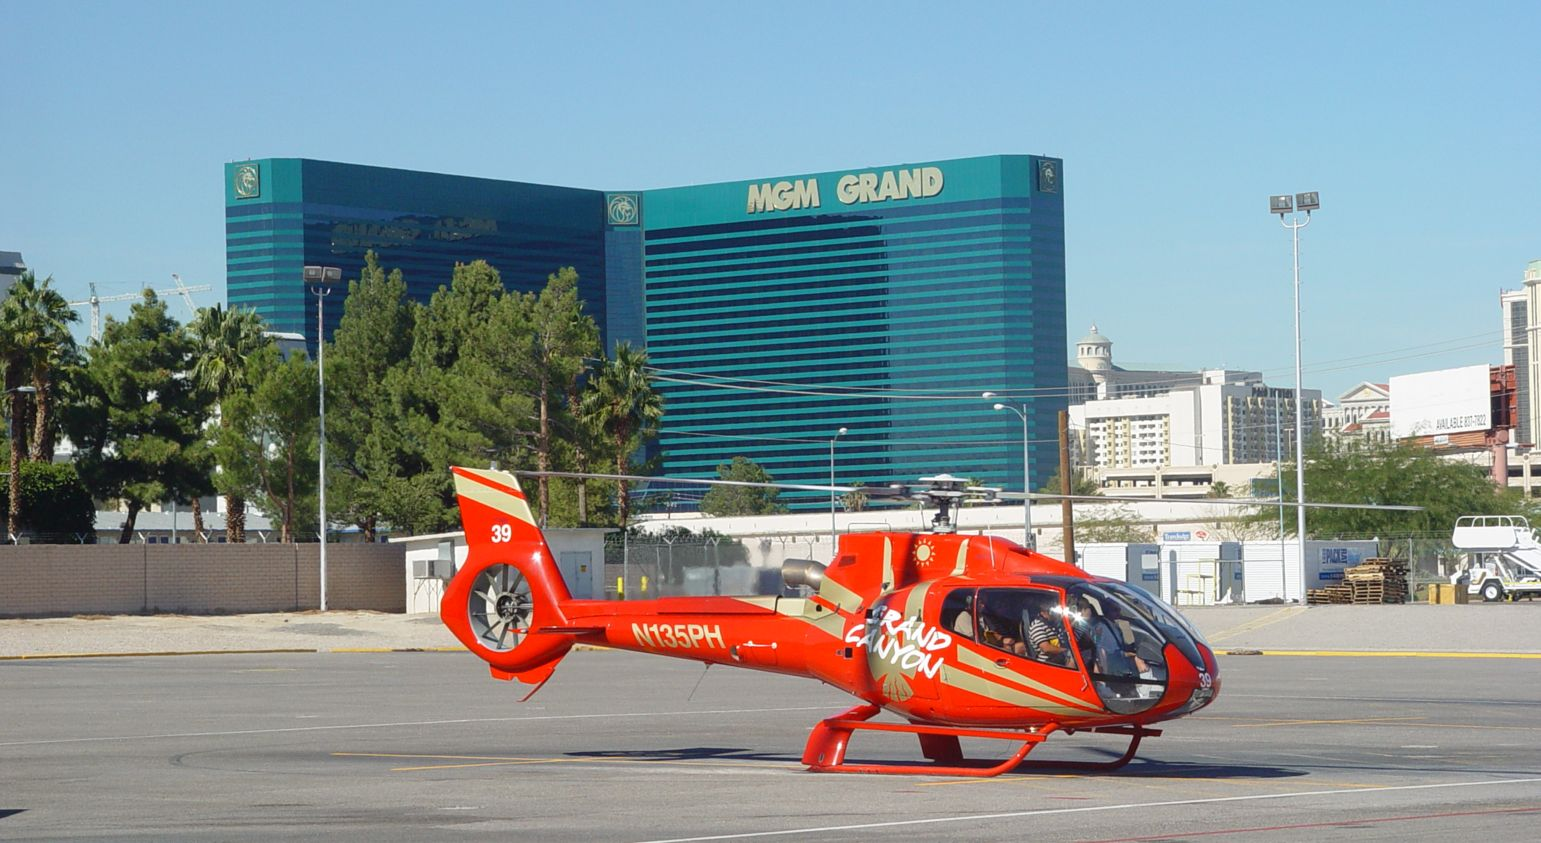 Papillon helicopter taking guests on a private Grand Canyon tour from Las Vegas